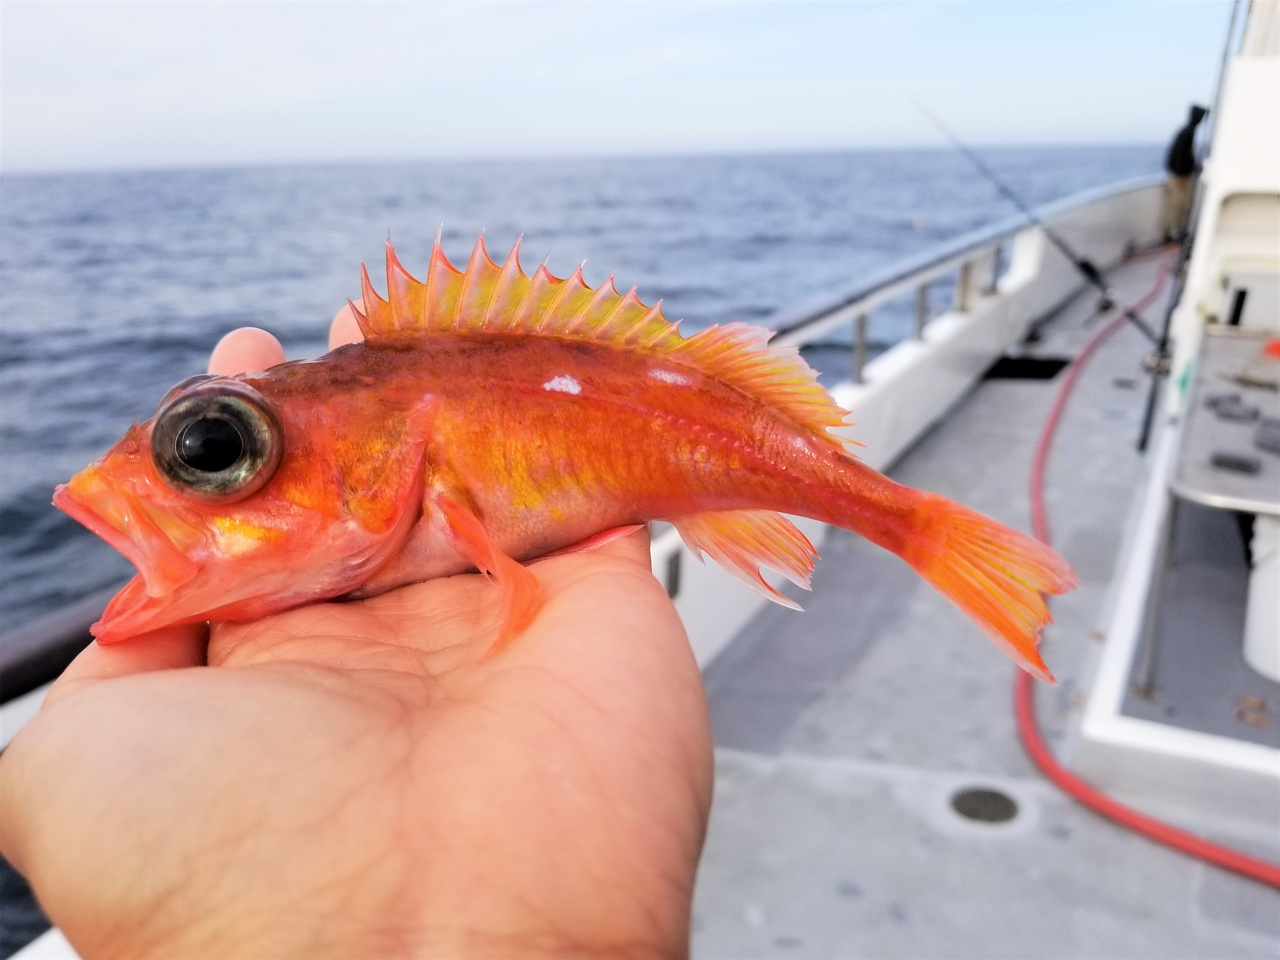 ​​Small orange/red fish with white spots sitting in the palm of a hand